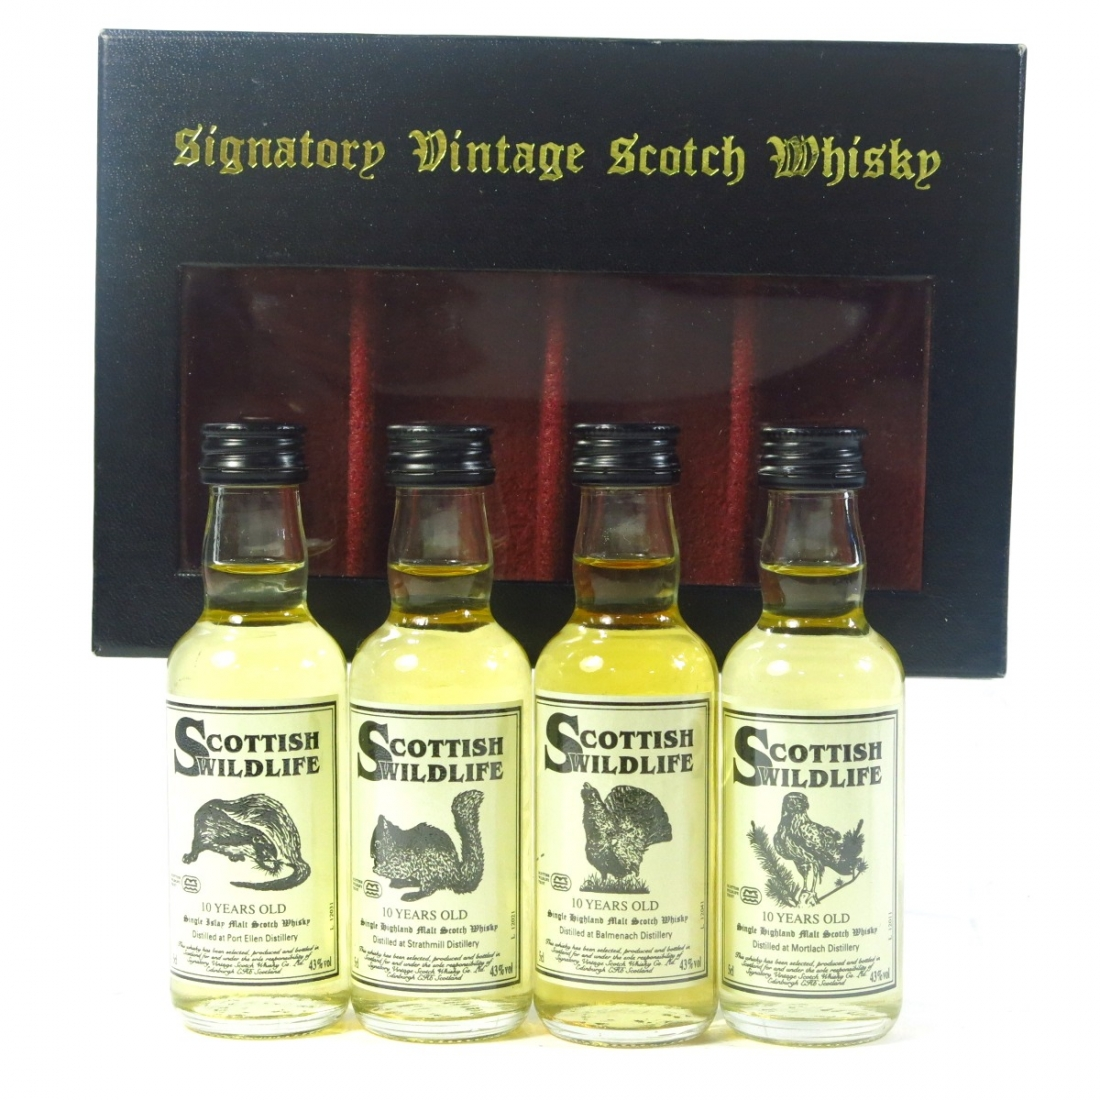 Signatory Vintage 10 Year Old Scottish Wildlife Miniatures 4 x 5cl / including Port Ellen